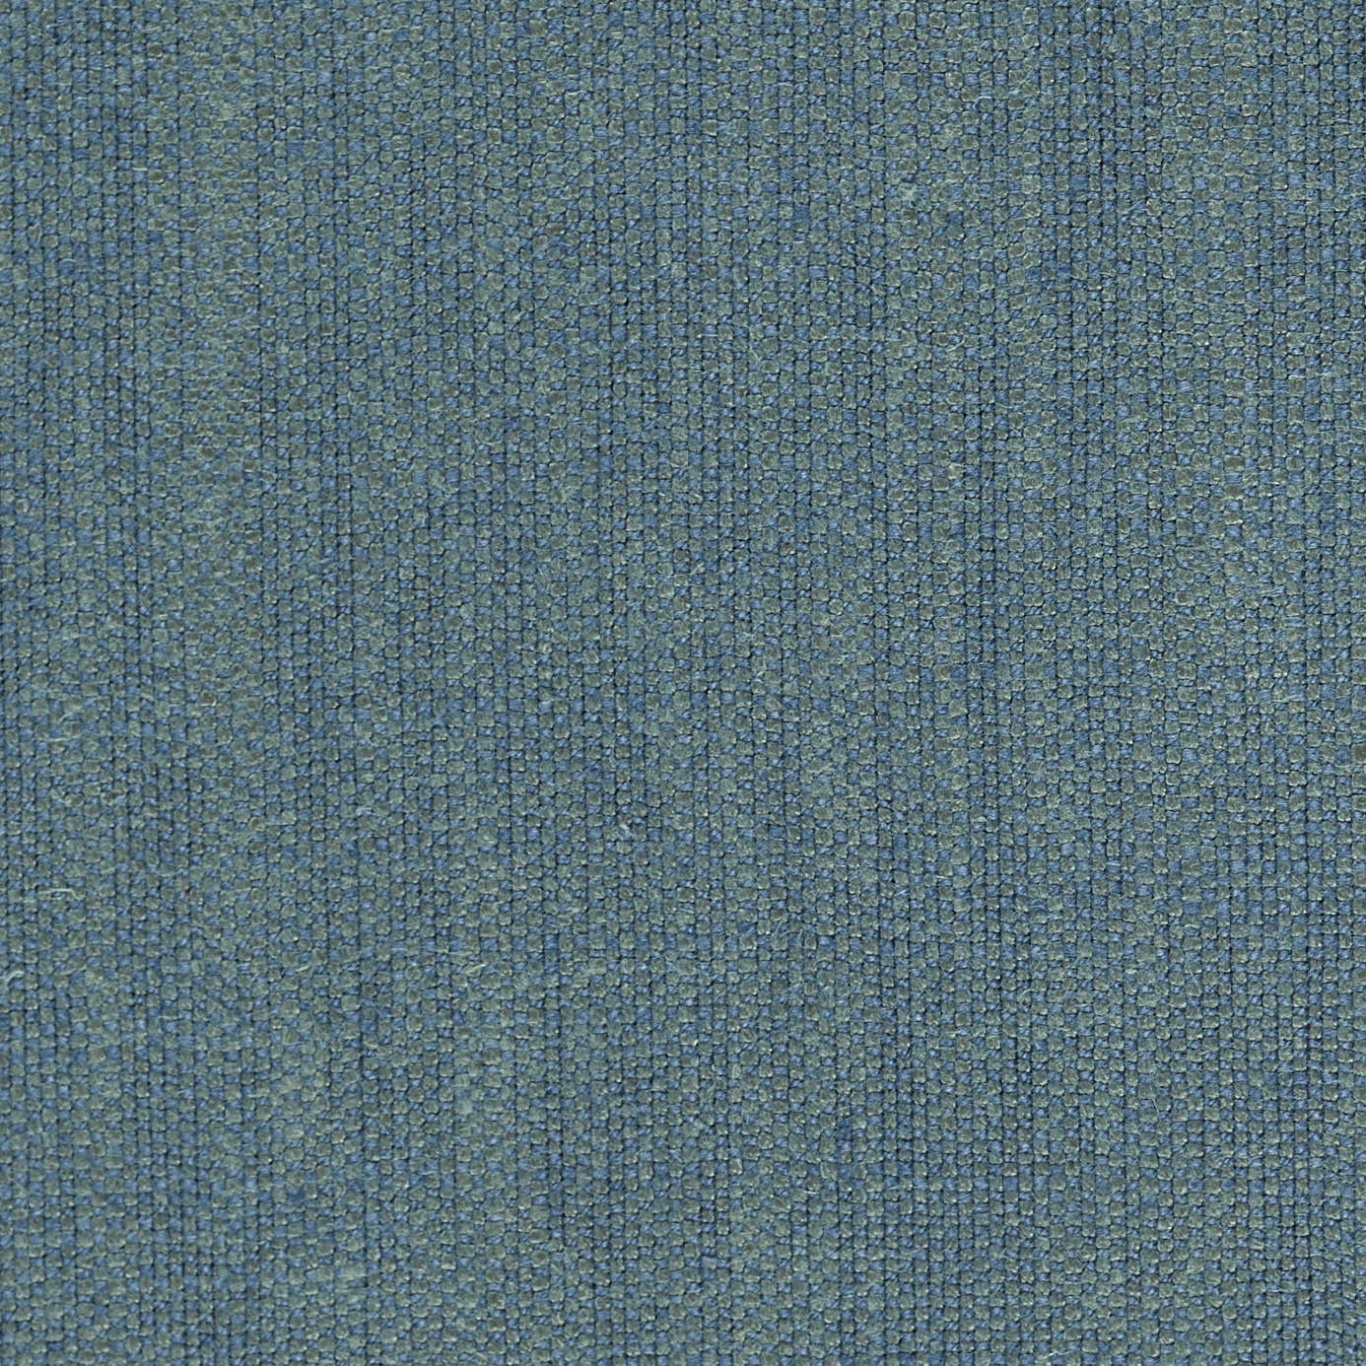 Image of Harlequin Atom Storm Blue Fabric 440211